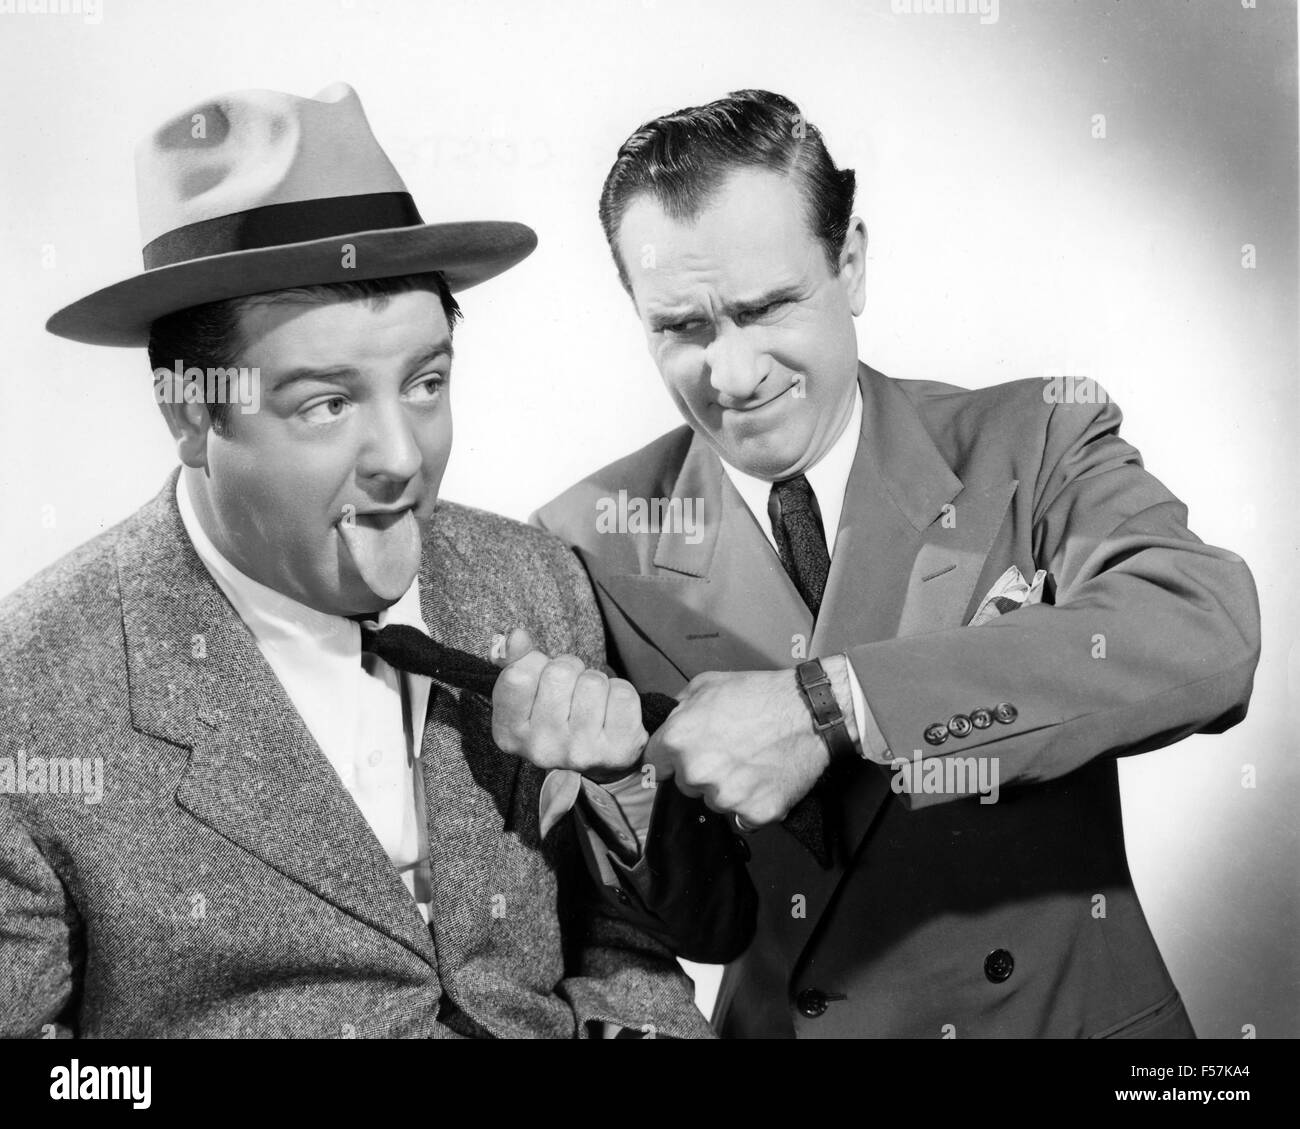 bud abbott and lou costellobud abbott and lou costello, bud abbott, bud abbott and lou costello meet the mummy, bud abbott jr, bud abbott death, bud abbott net worth, bud abbott and lou costello movies, bud abbott and lou costello who's on first video, bud abbott grave, bud abbott biography, bud abbott bio, bud abbott and lou costello who on first, bud abbott jewish, bud abbott's partner crossword, bud abbott and lou costello youtube, bud abbott and lou costello math, bud abbott imdb, bud abbott interview